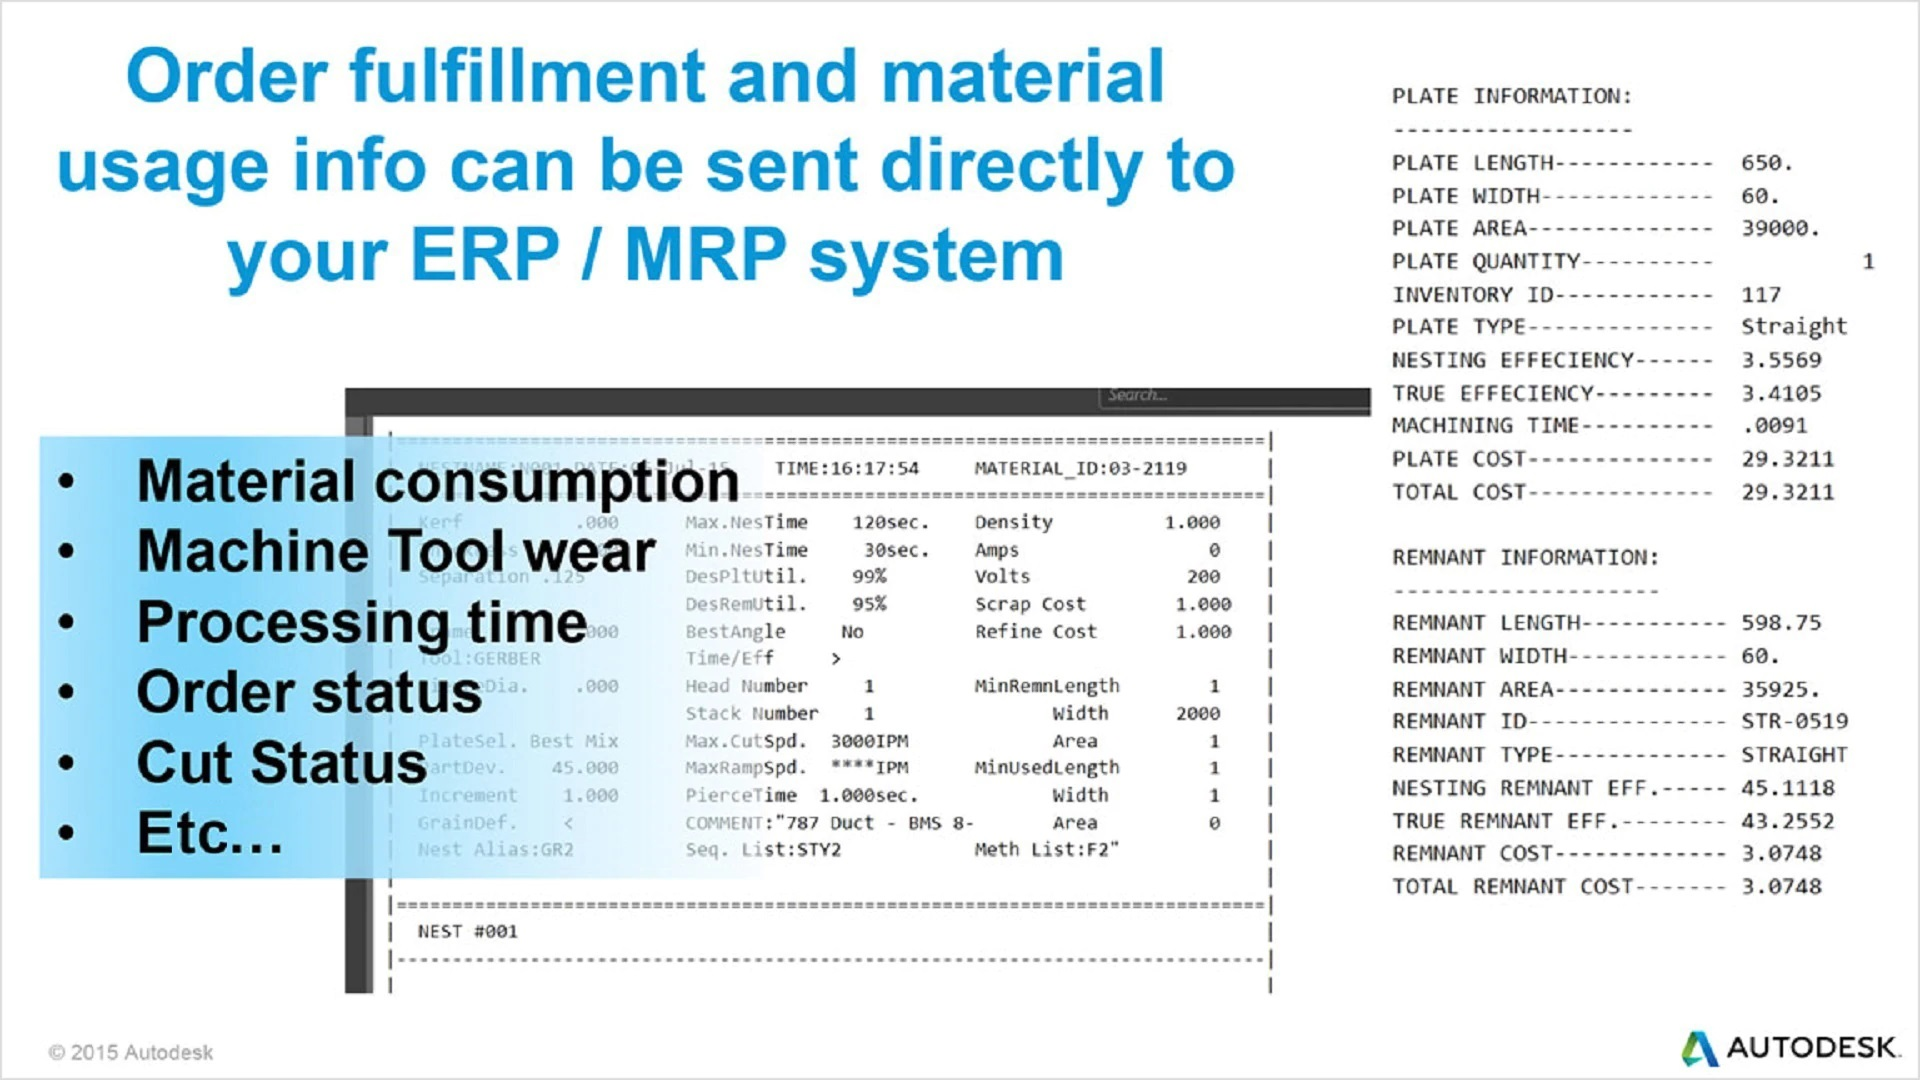 erp-mrp-system-integration-large